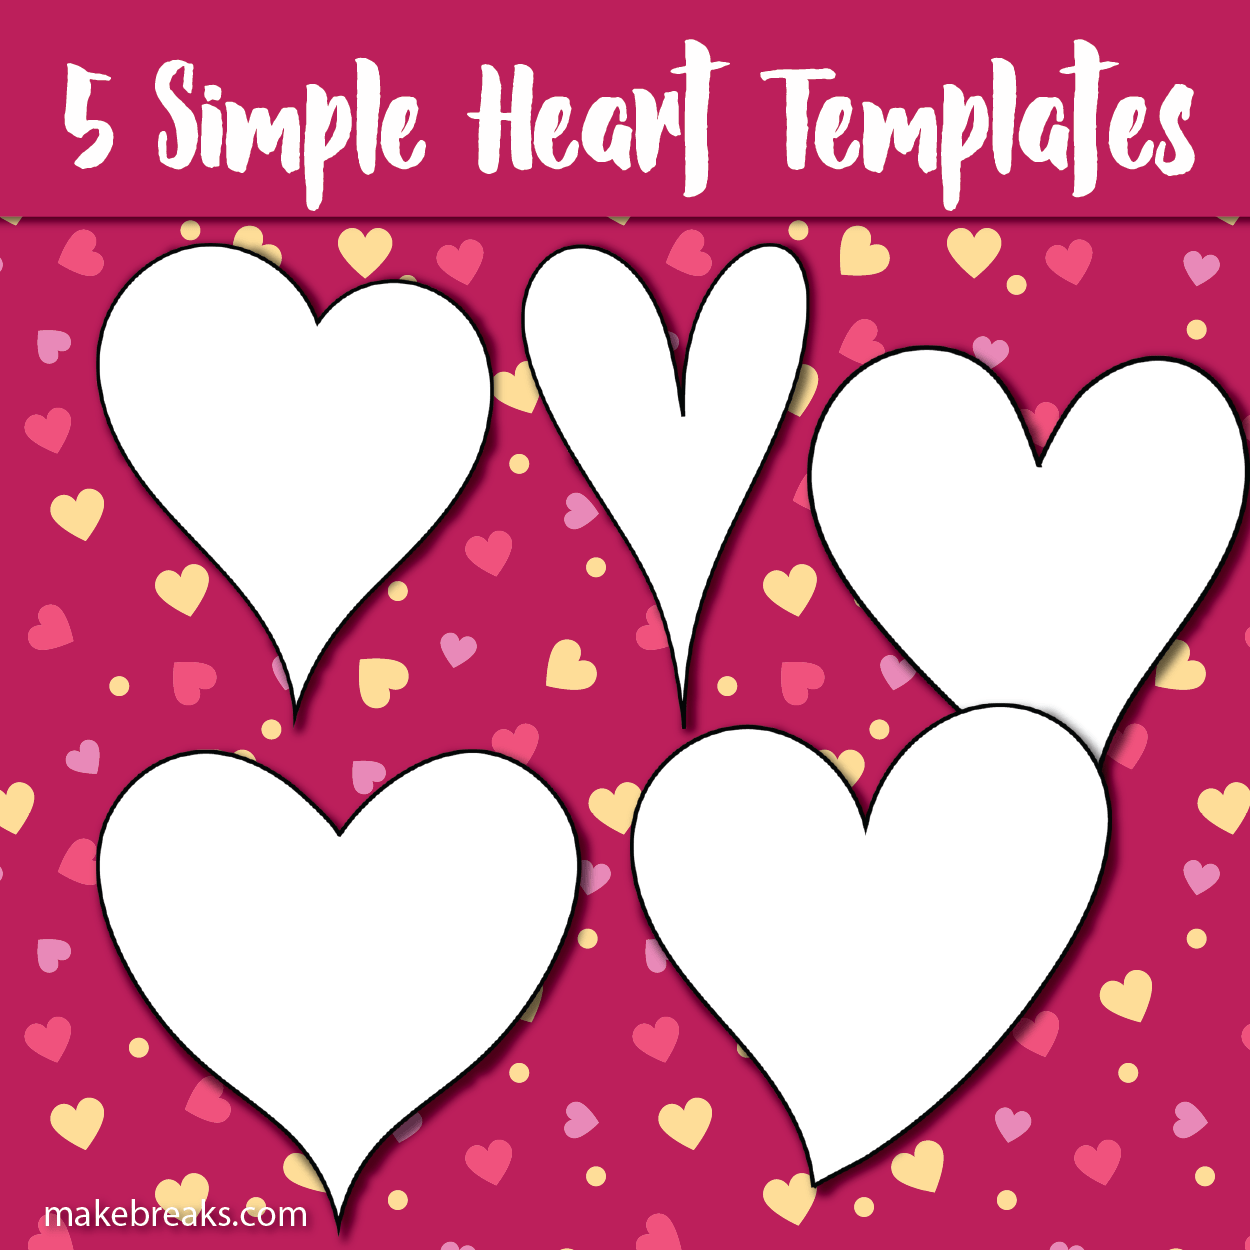 graphic about Free Printable Heart Template identify 5 Cost-free Printable Centre Templates - Create Breaks